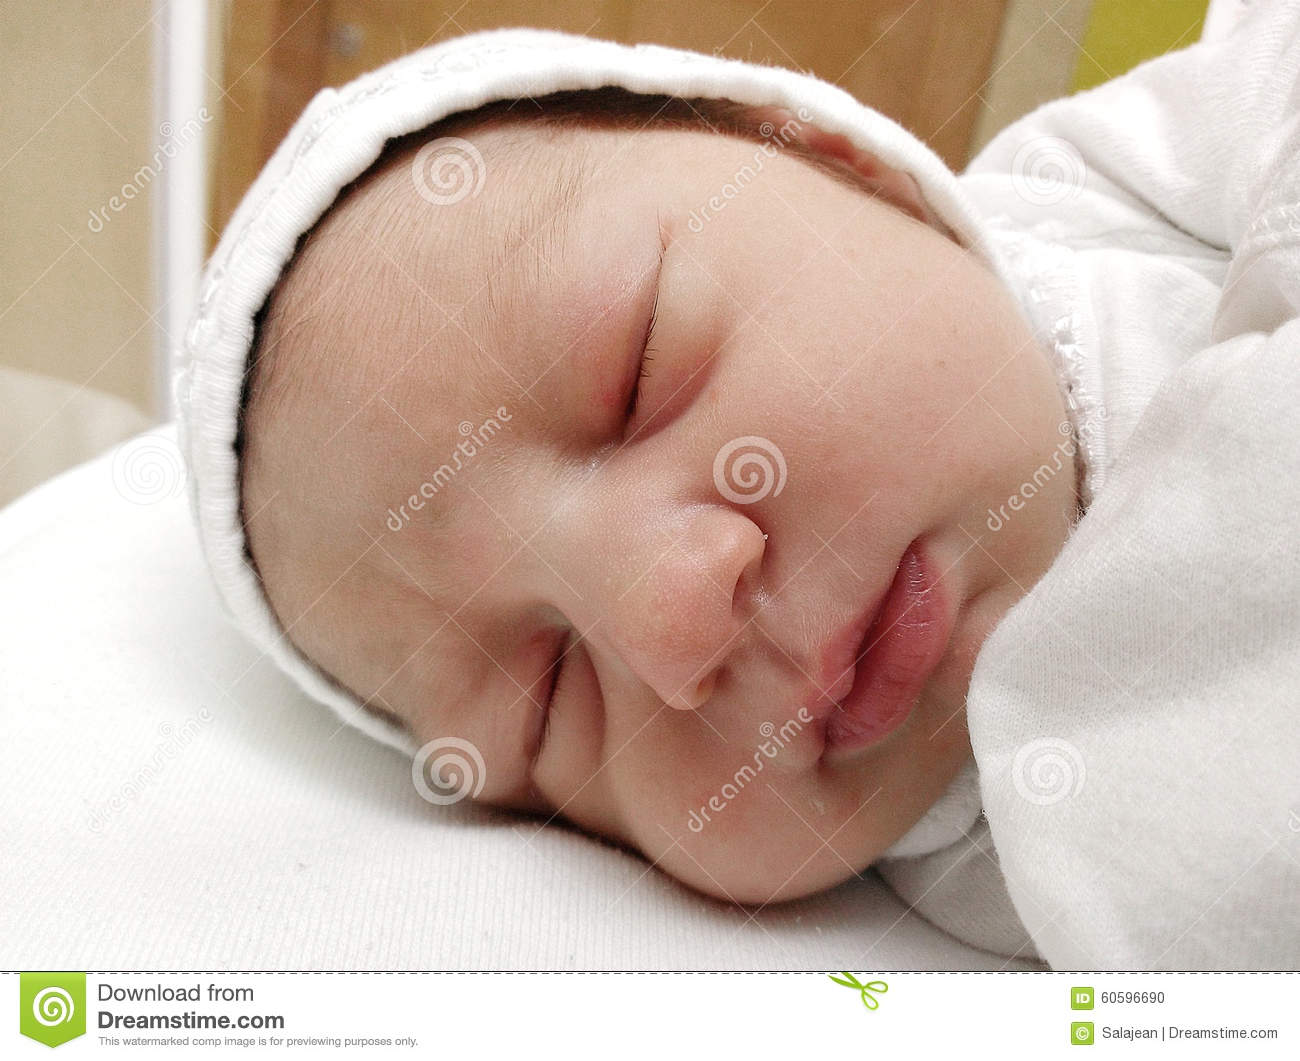 One day old newborn baby